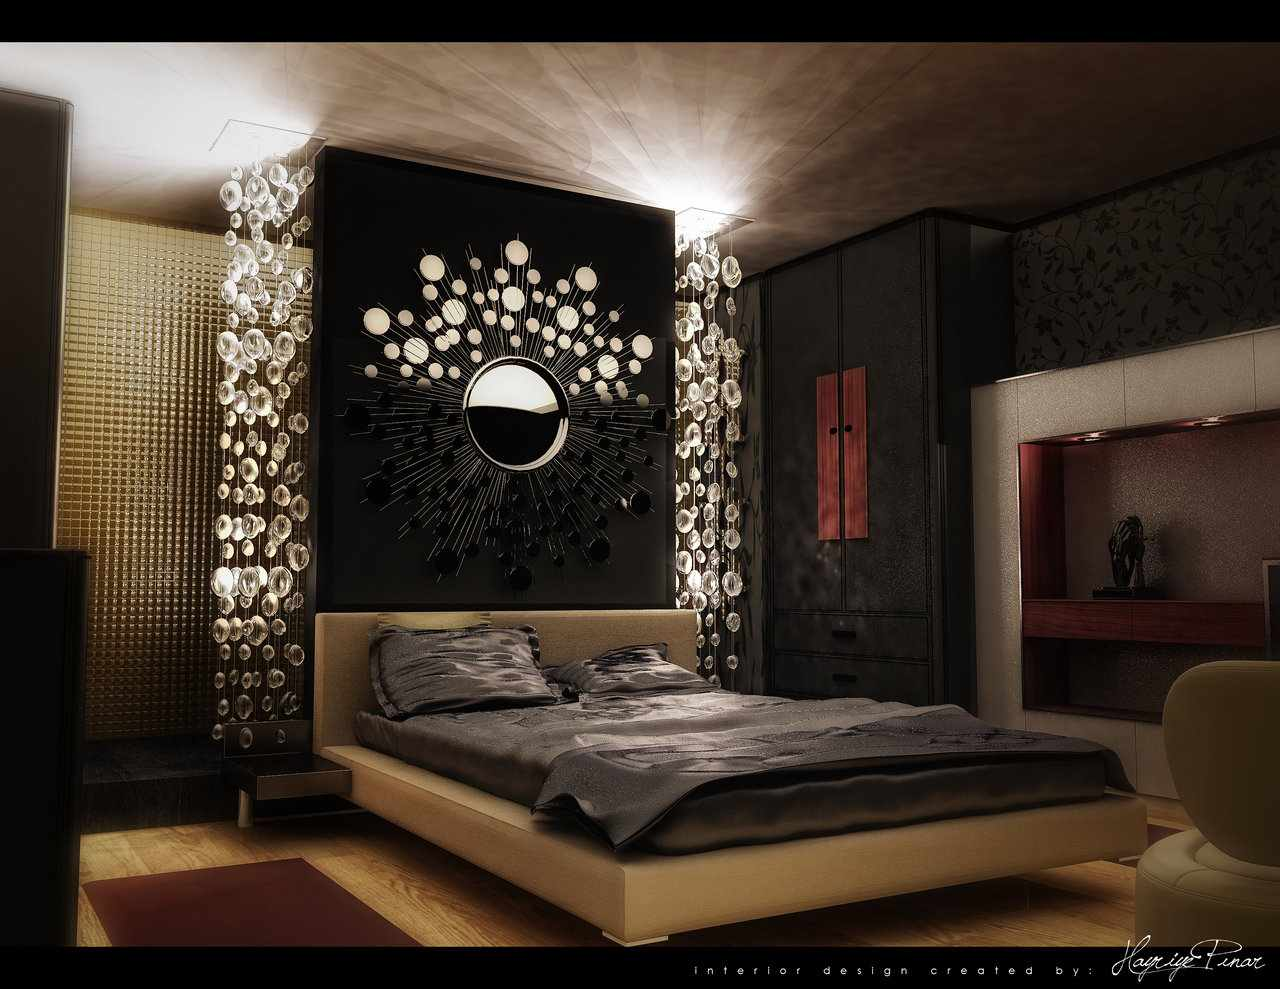 ikea bedroom ideas ikea bedroom 2014 ideas ForBedroom Ideas With Pictures